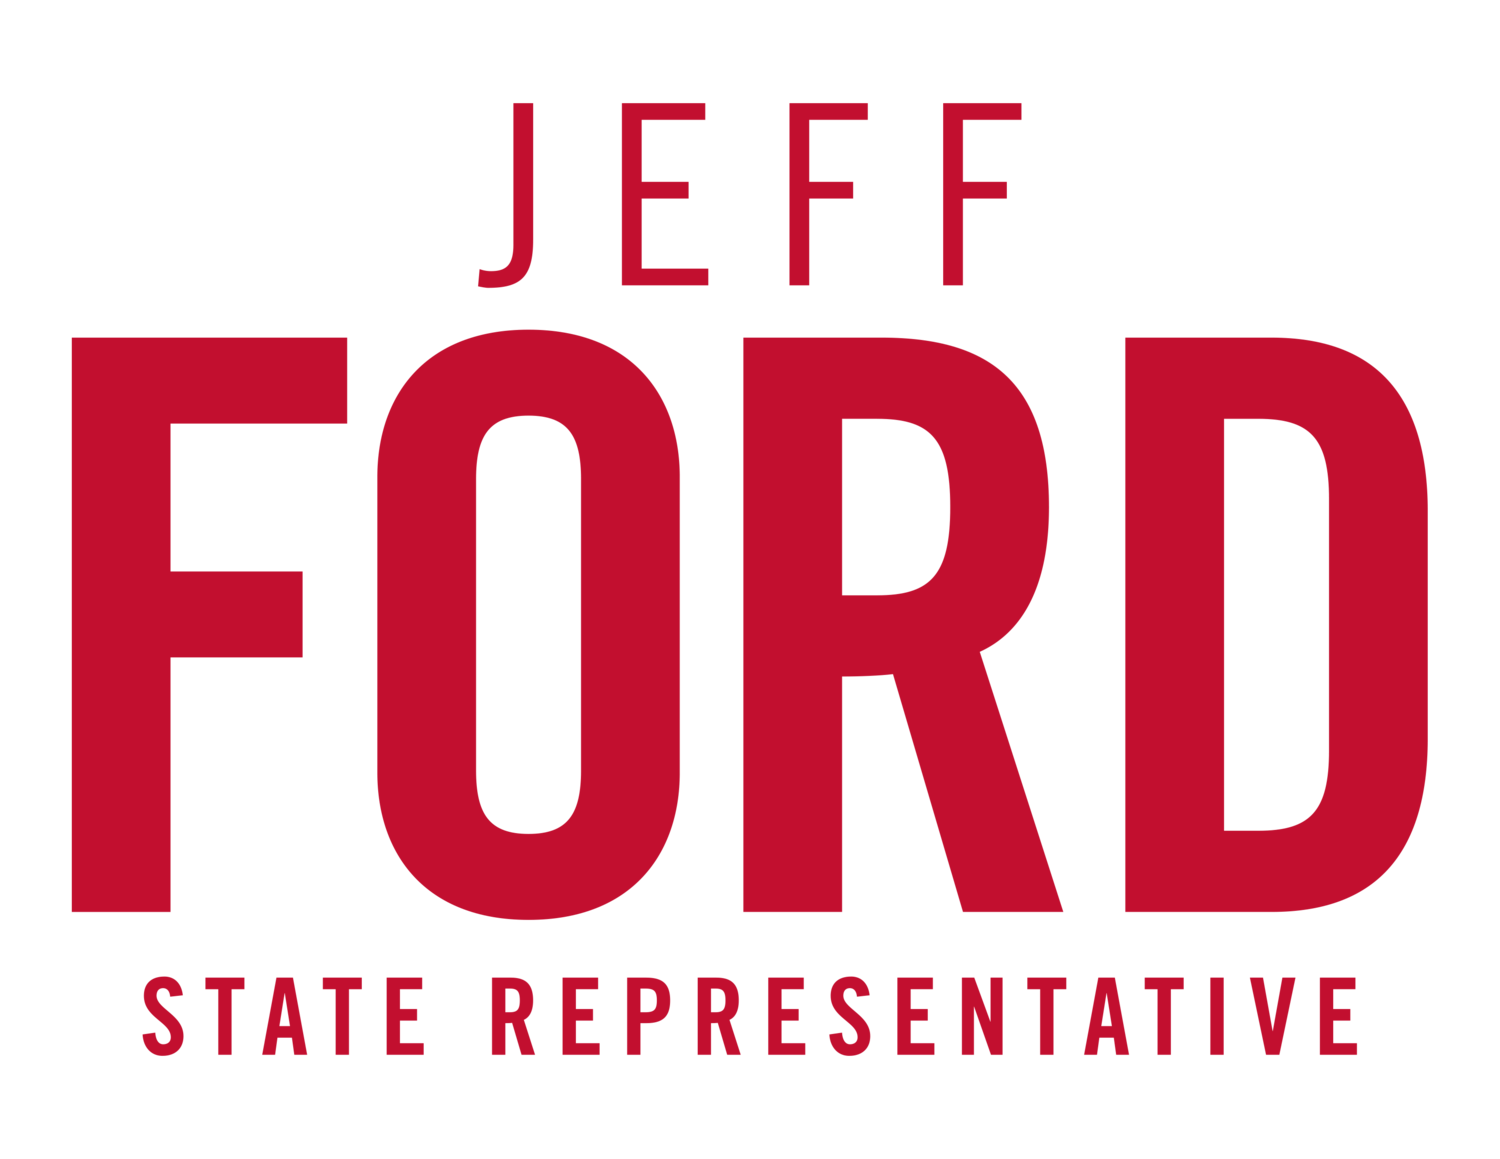 Vote Jeff Ford